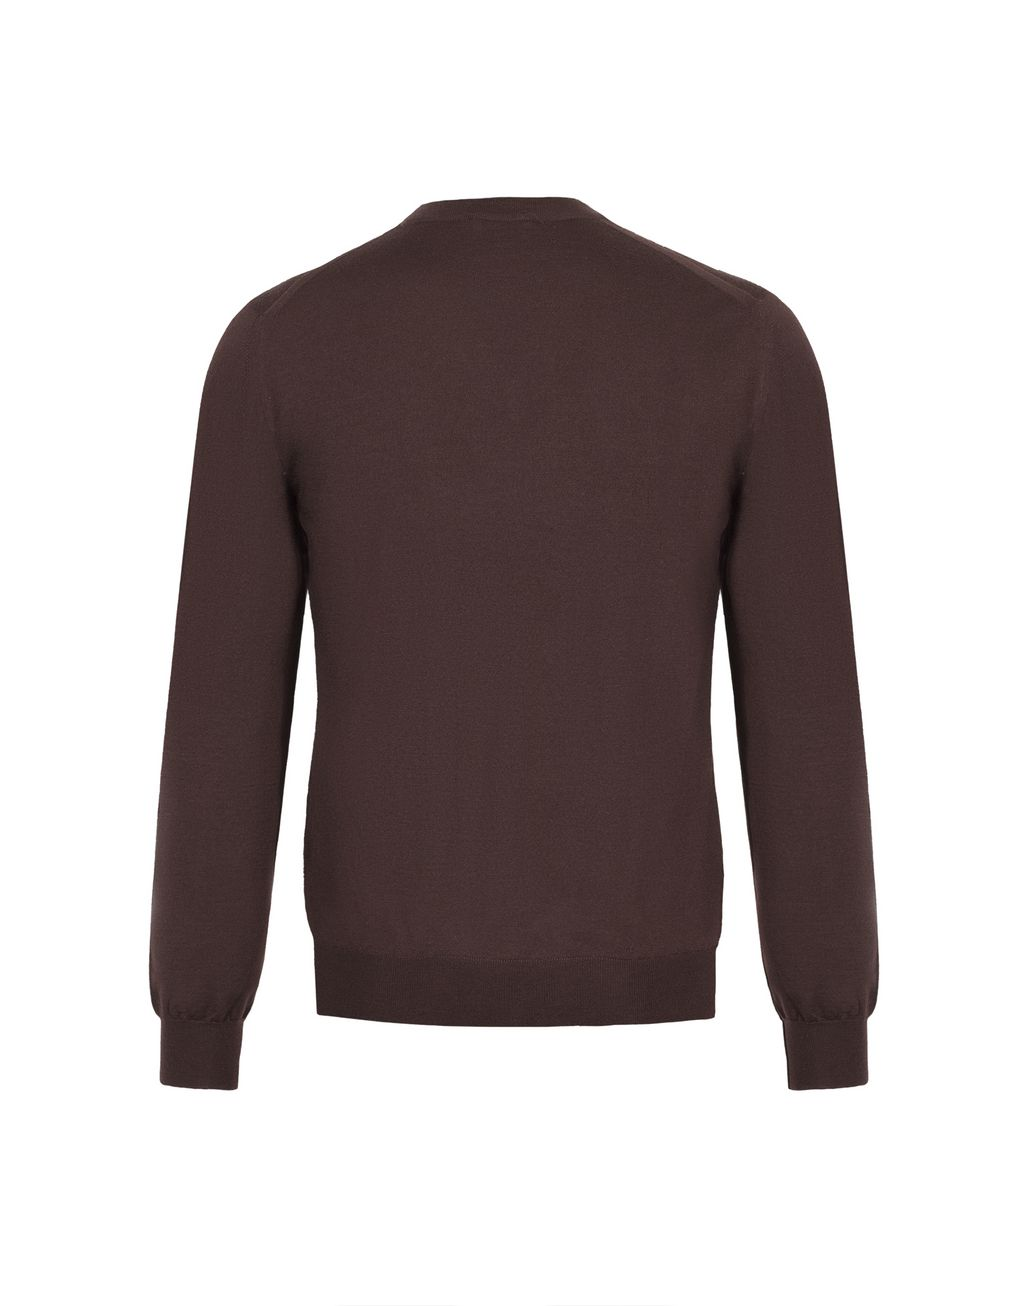 BRIONI Chocolate Brown V- Neck Sweater Knitwear U d